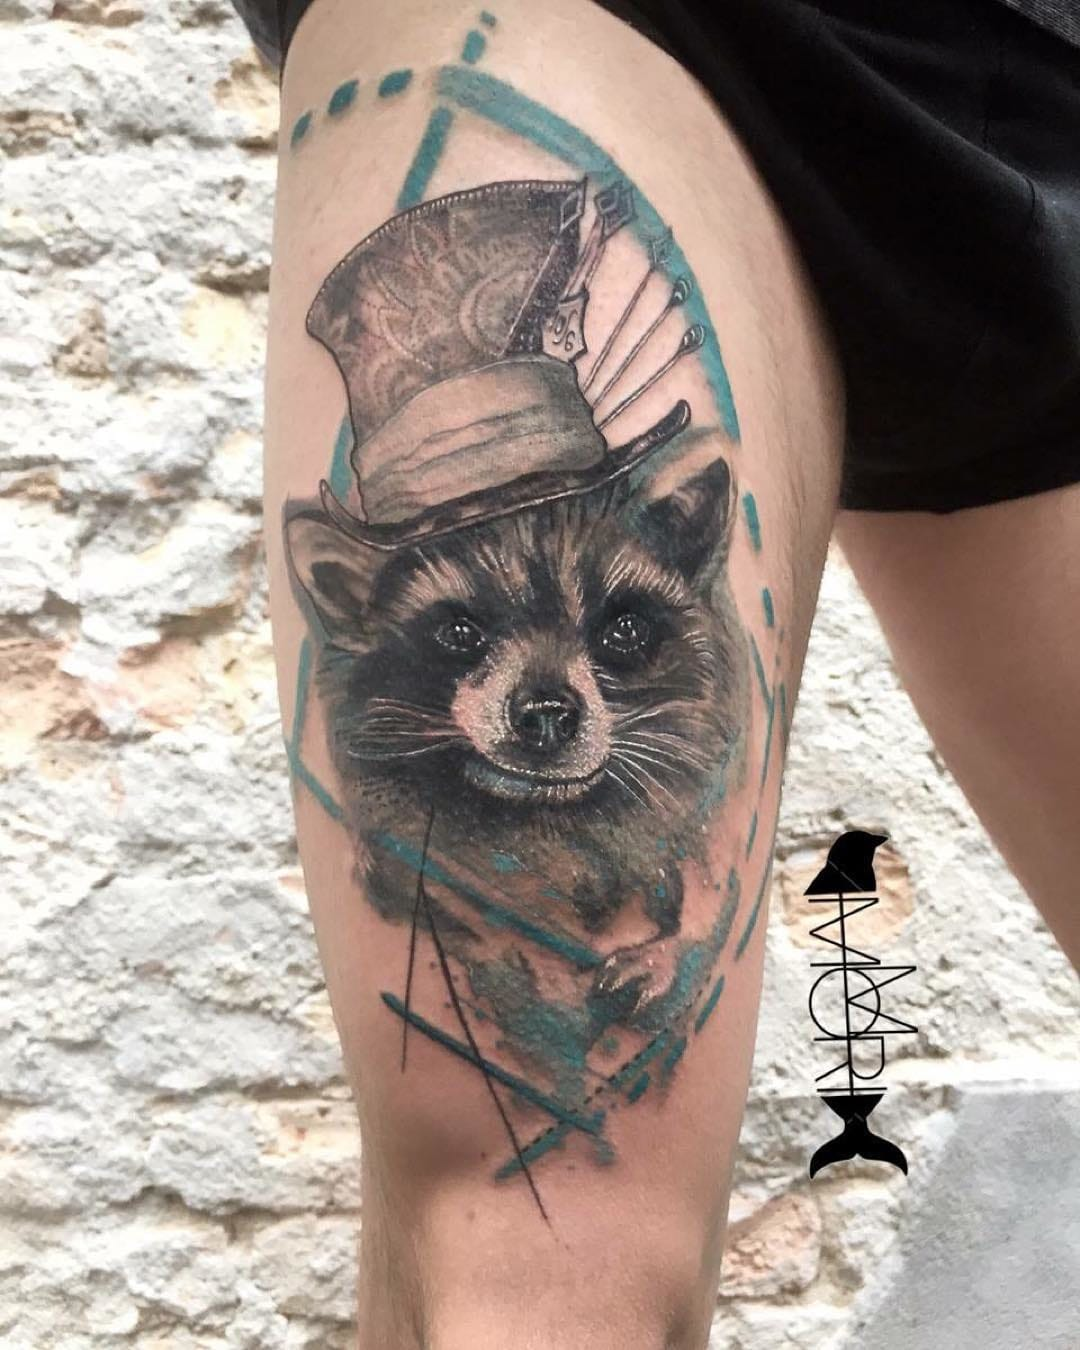 Creative Raccoon Tattoo by Mo Mori